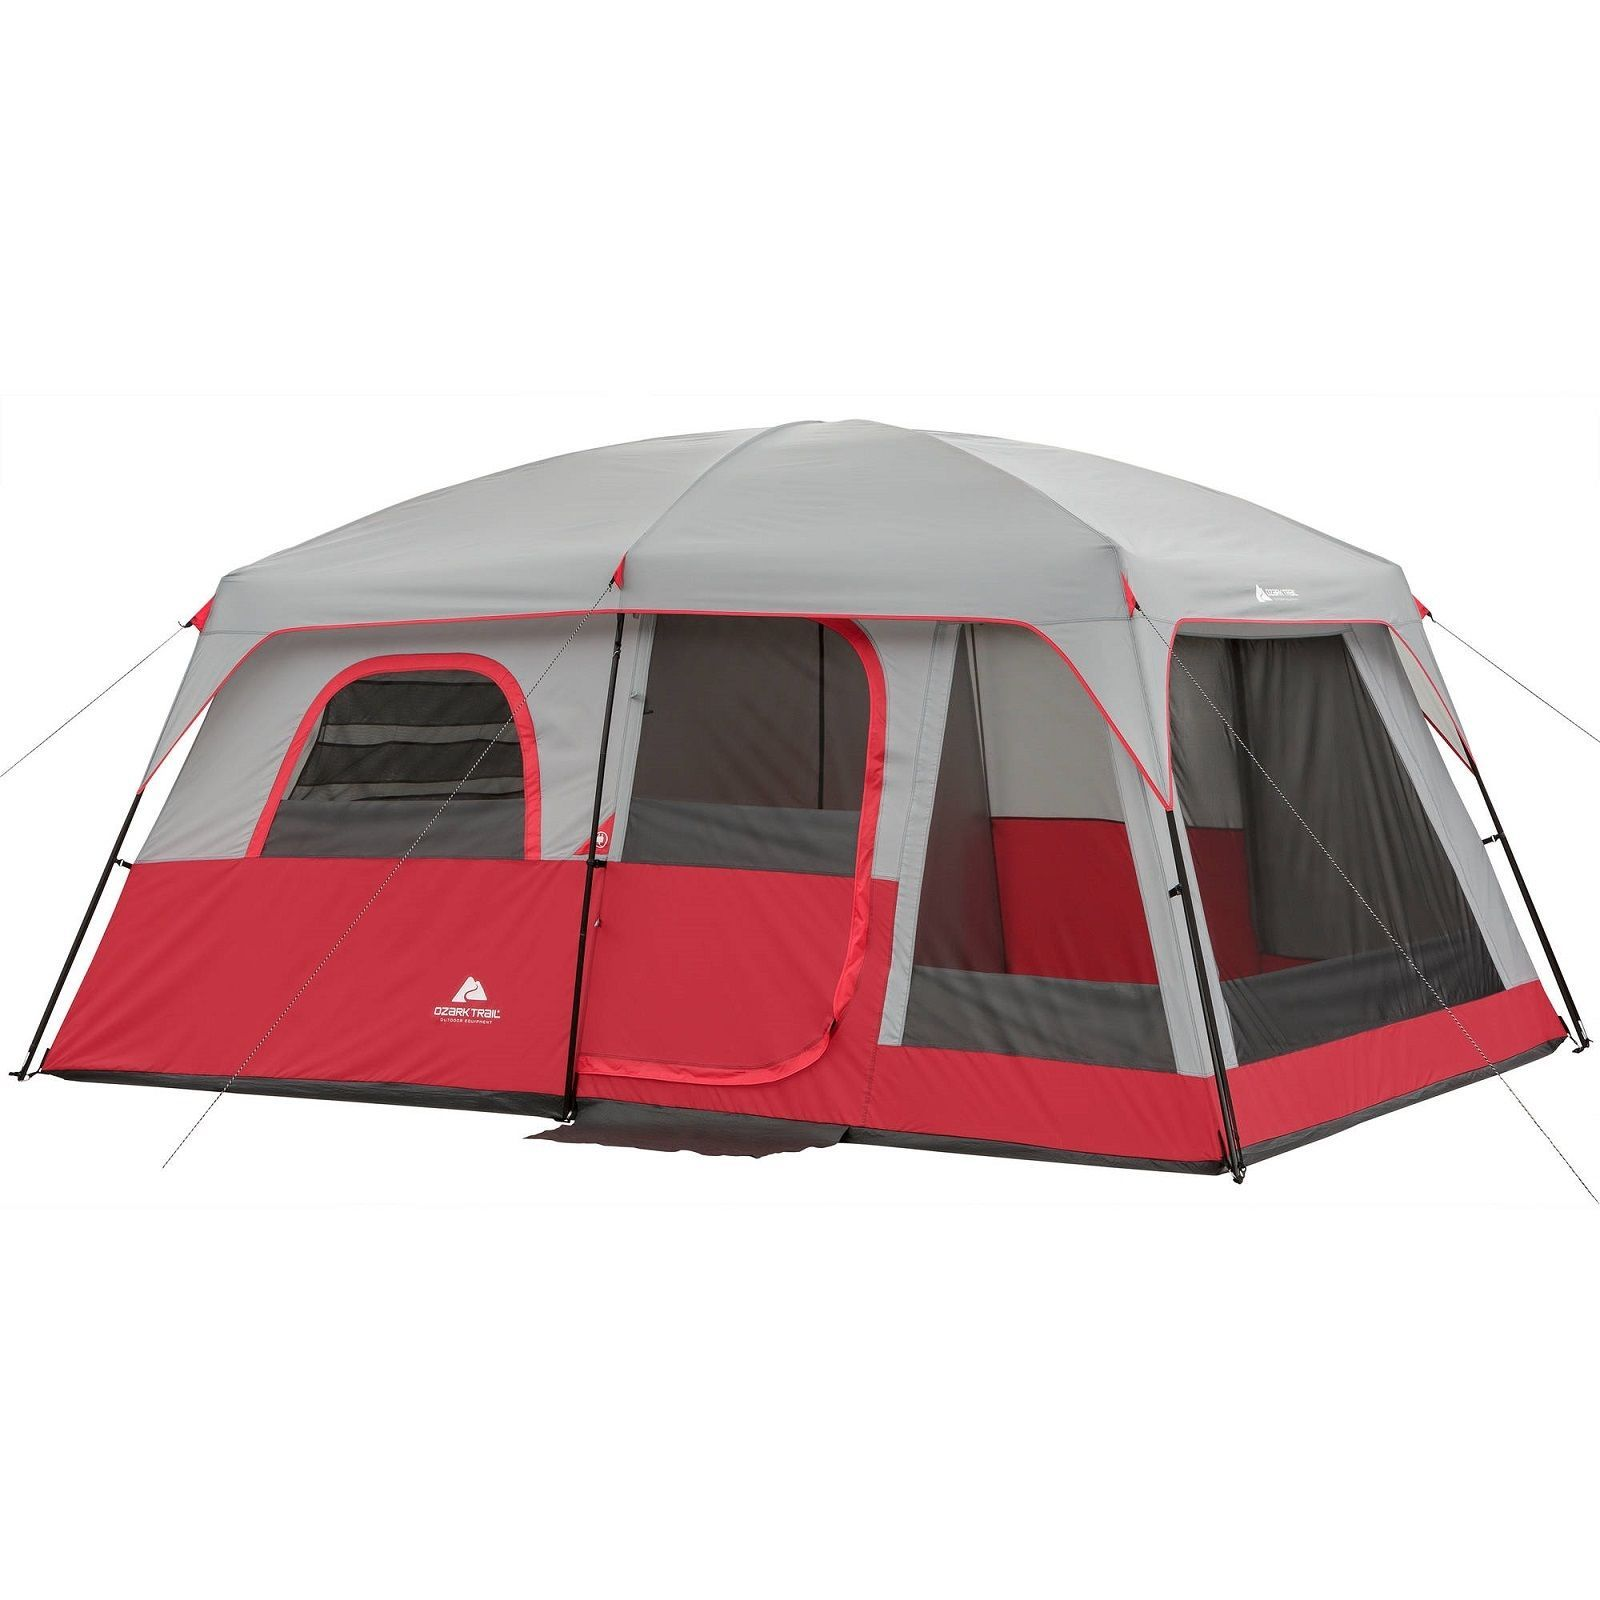 Family Cabin Tent 10 Person 2 Rooms Extra Large Outdoor C&ing Hiking Shelter  sc 1 st  Pinterest & Family Cabin Tent 10 Person 2 Rooms Extra Large Outdoor Camping ...